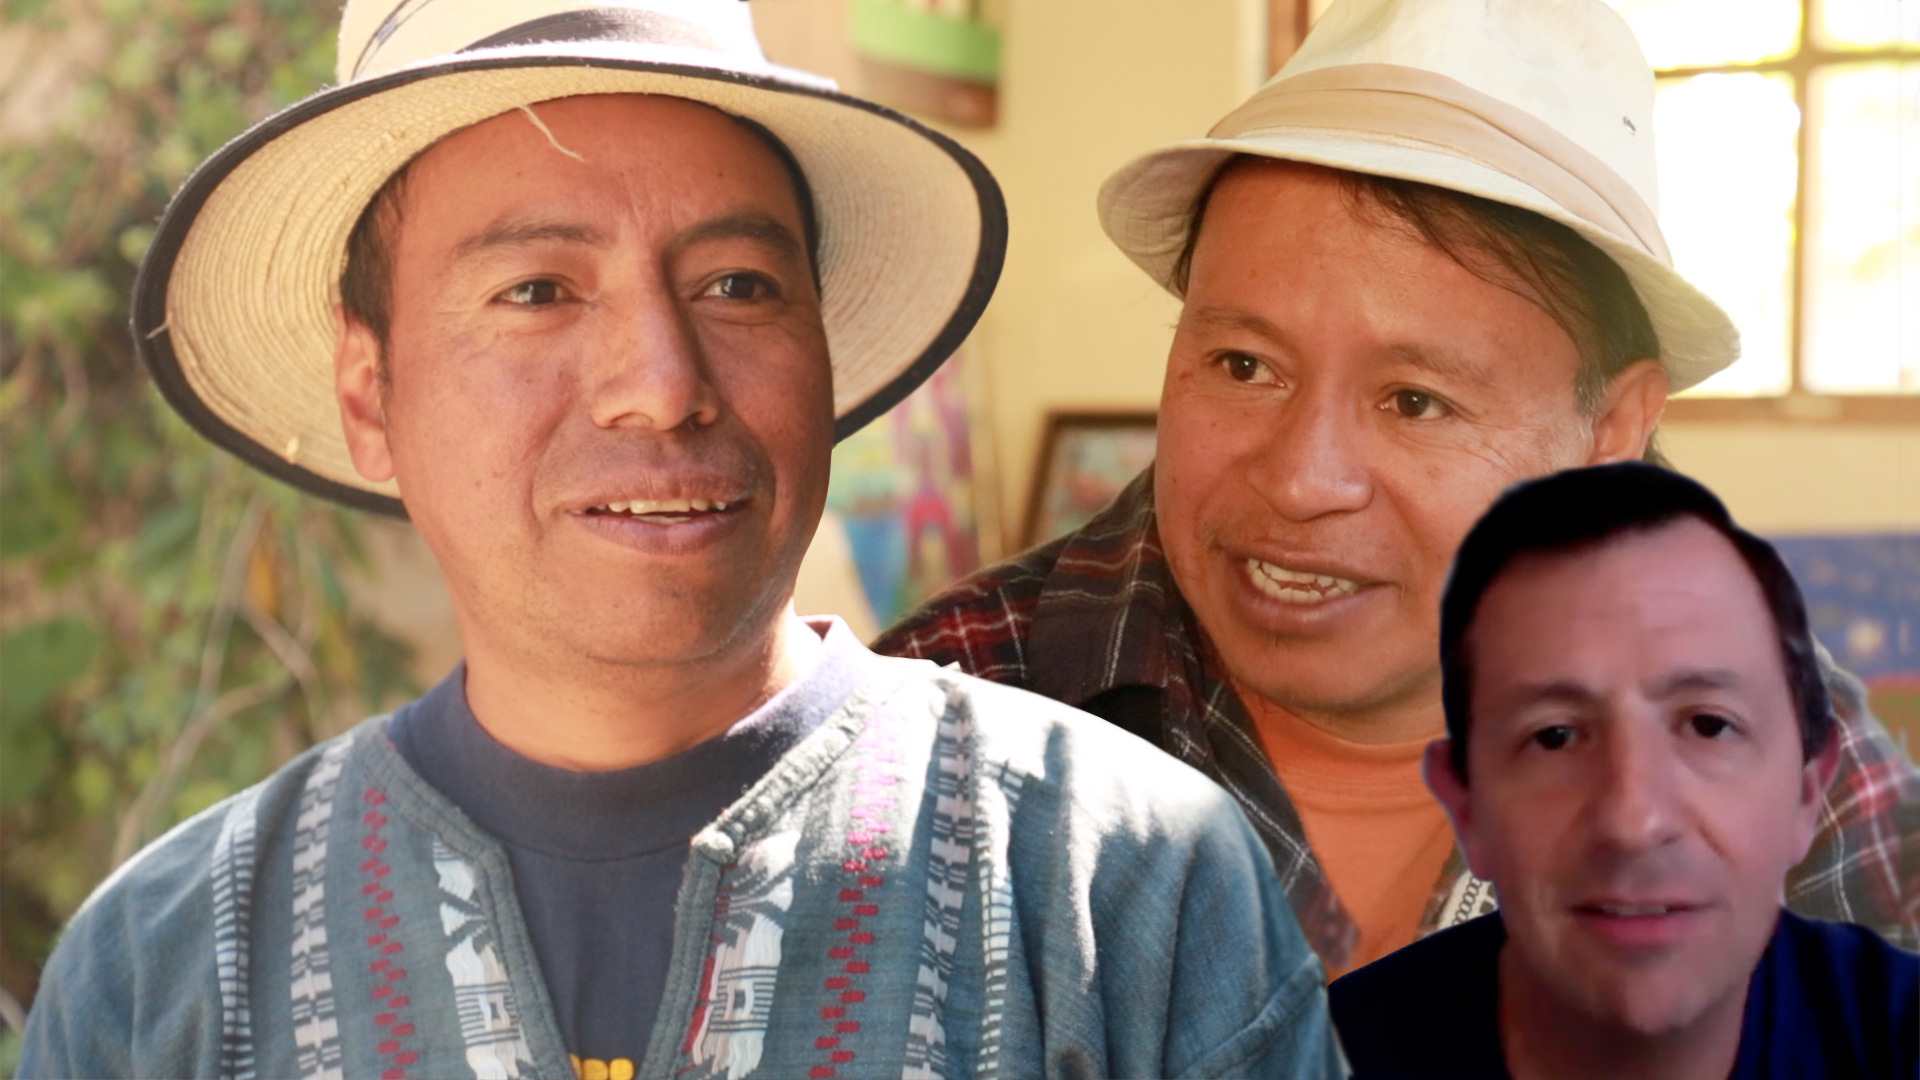 K'iche is a Mayan language spoken in Guatemala by over a million people. Join us for this episode of Language Stories as we explore K'iche Maya at a local homestay and in a busy market town, as well as learning how to learn K'iche.